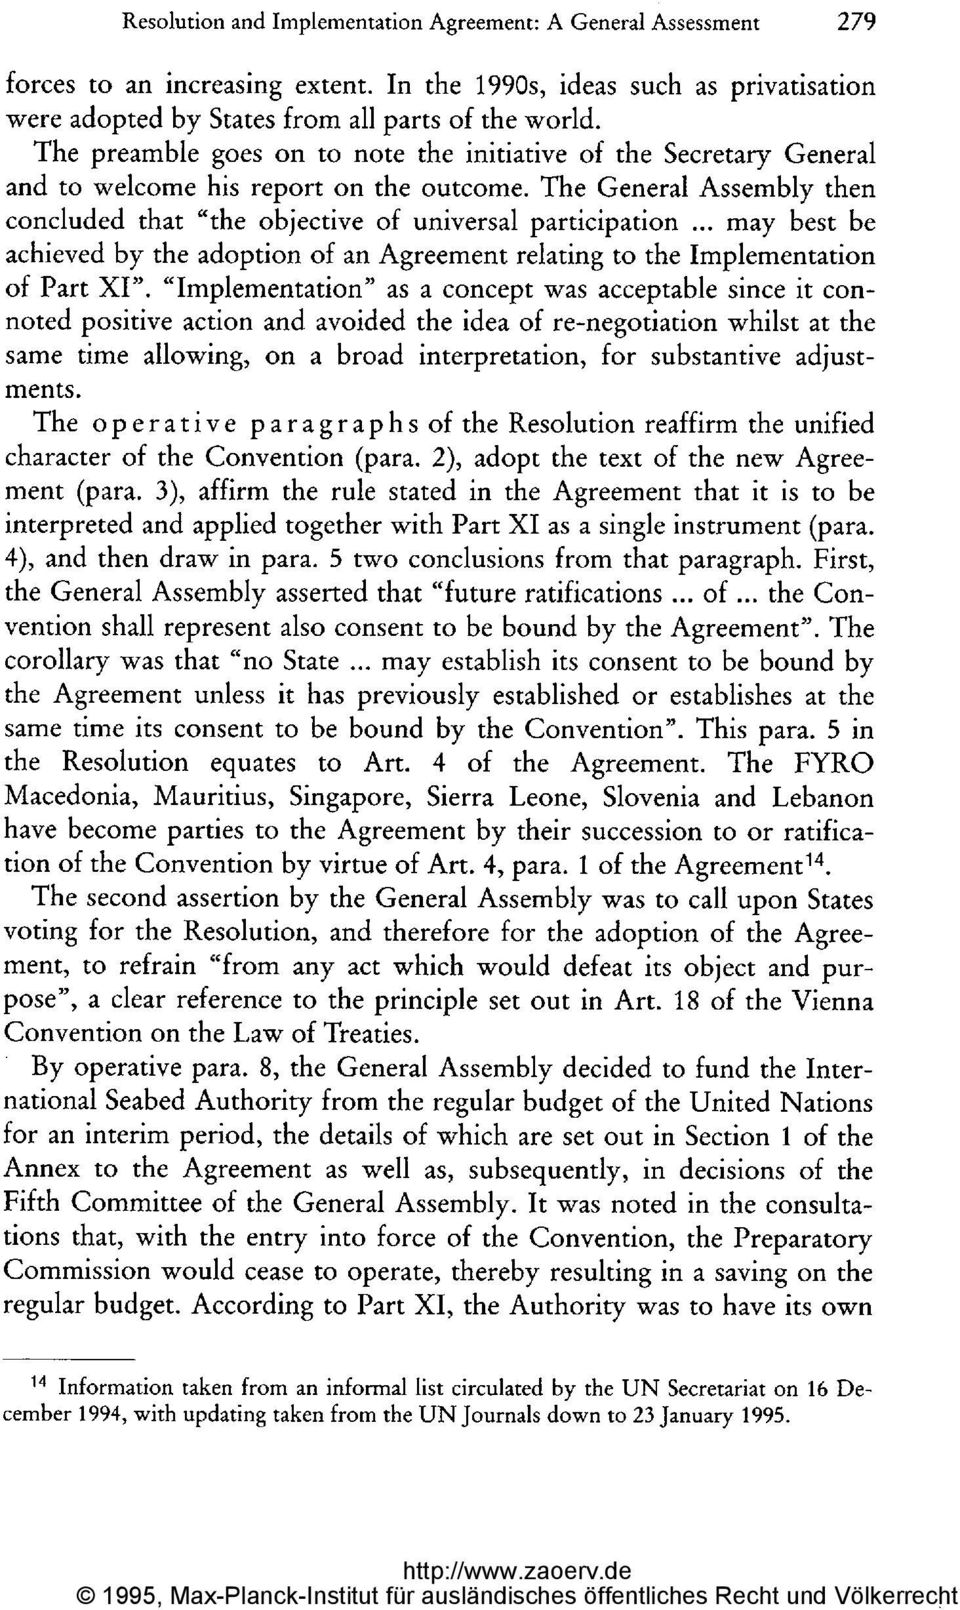 "The General Assembly then concluded that ""the objective of universal participation may best be achieved by the adoption of an Agreement relating to the Implementation of Part XI""."